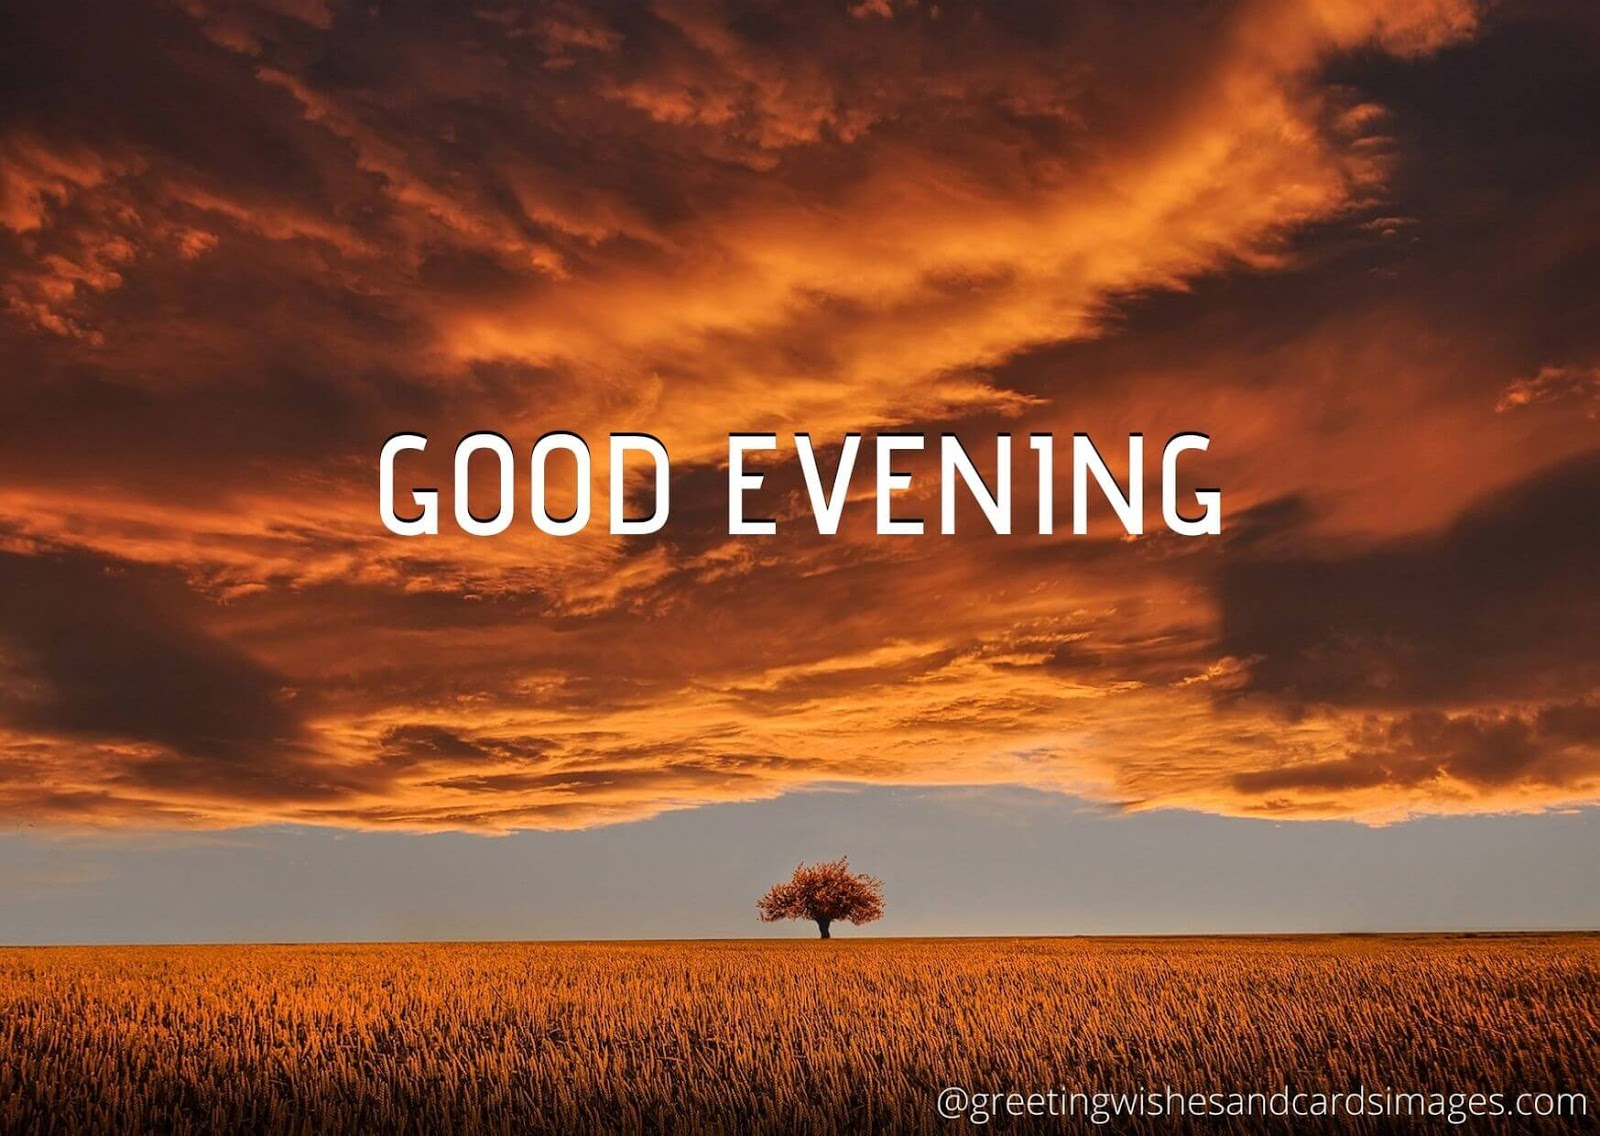 Good Evening 2020 Greeting Wishes And Images